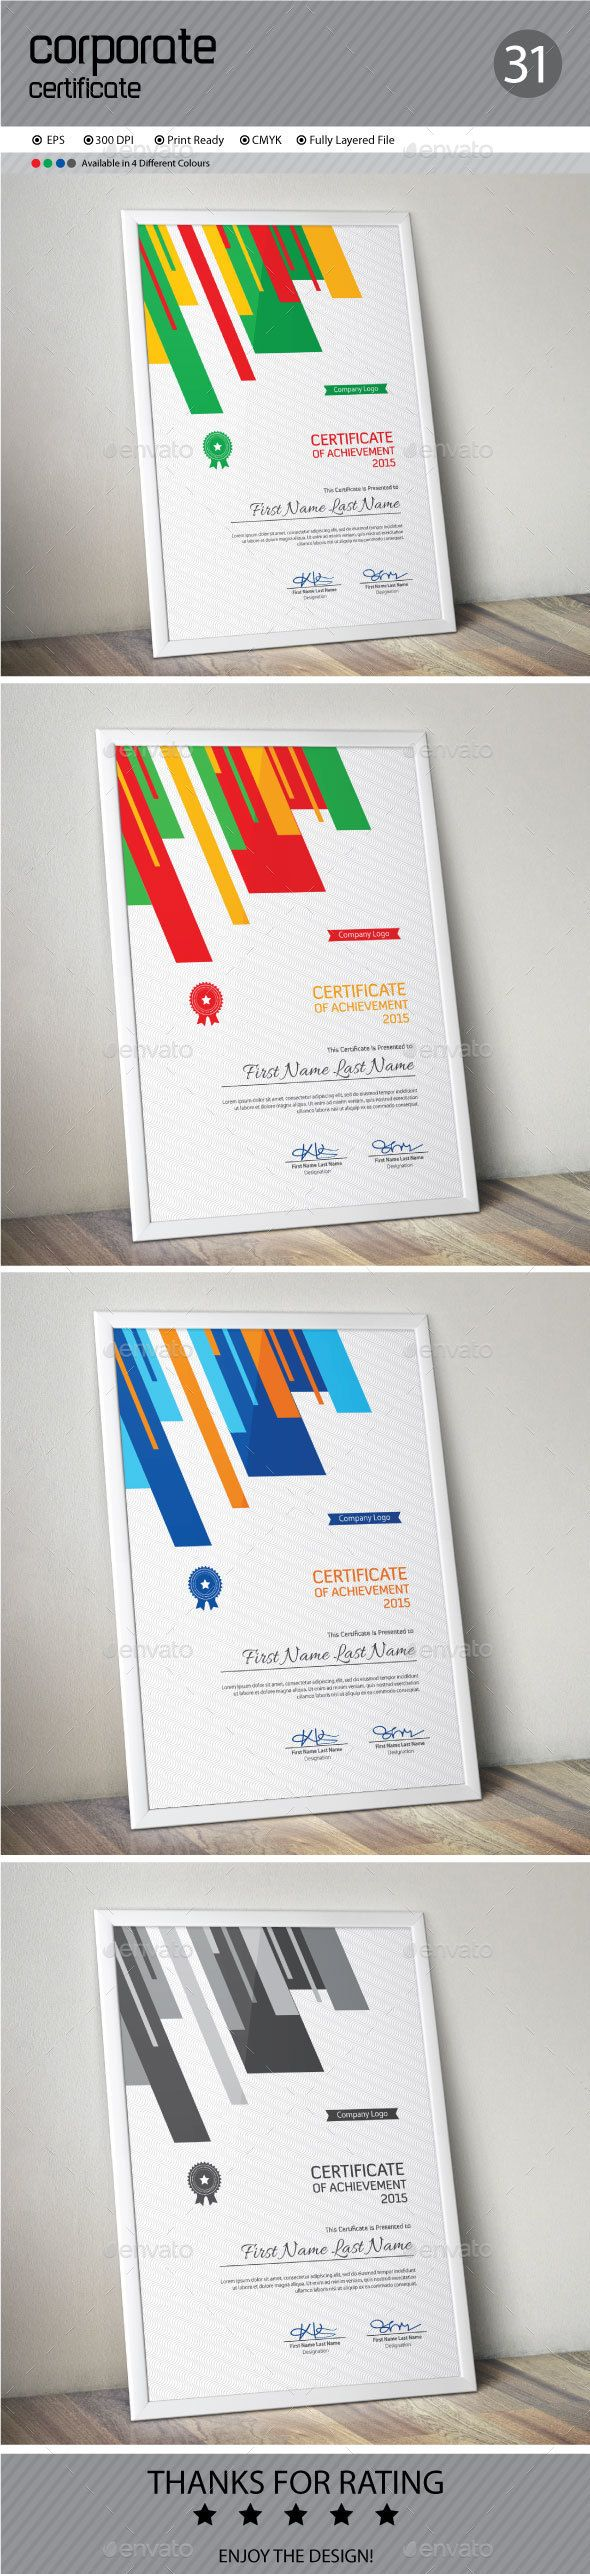 Certificate - Certificate Template Vector EPS. Download here: http://graphicriver.net/item/certificate/13470512?s_rank=131&ref=yinkira